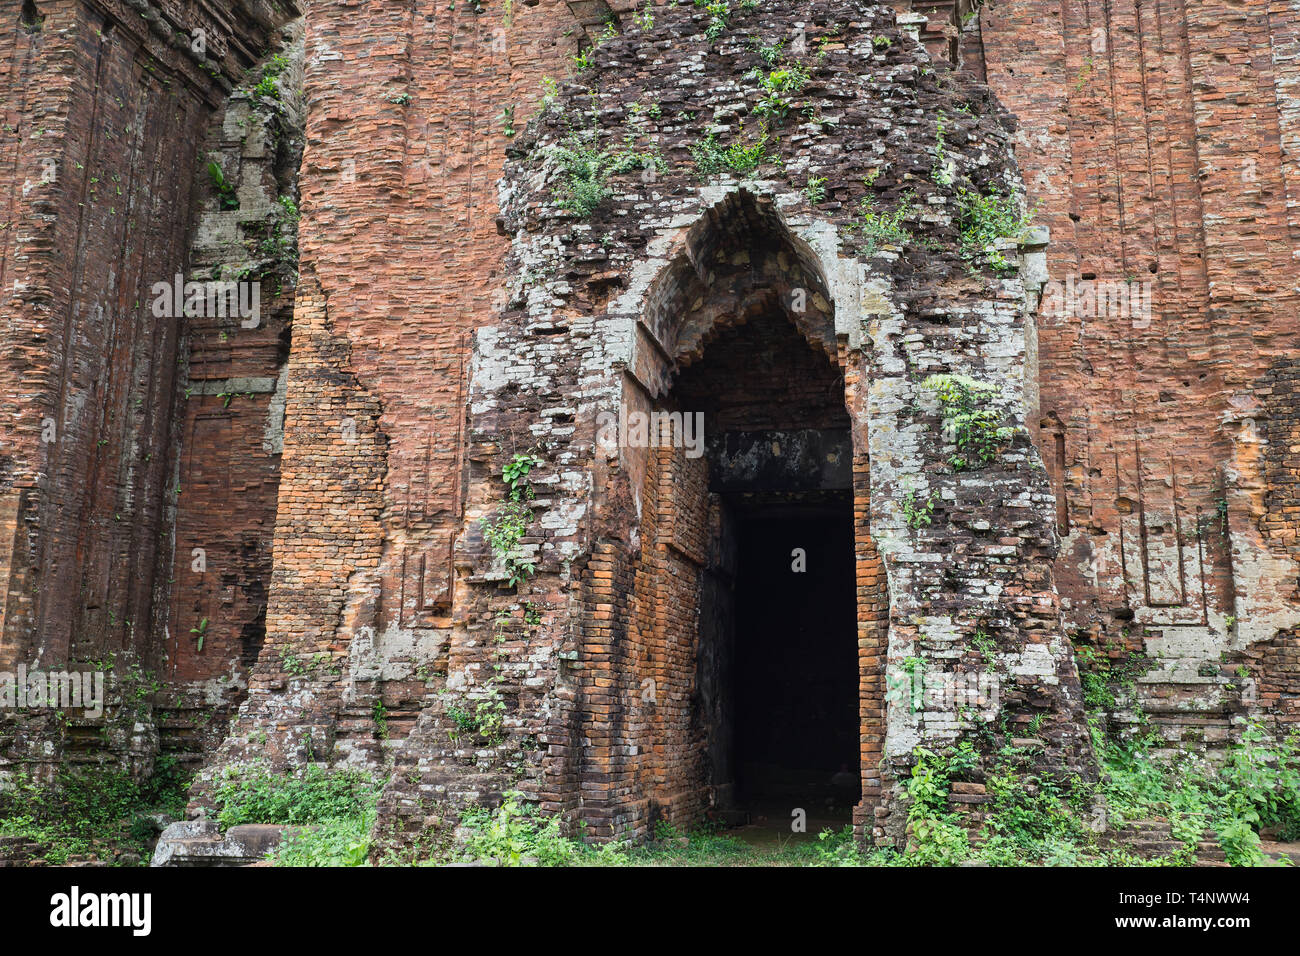 Closed entrance view of Chien Dan, Champa ancient tower in Quang Nam, Vietnam, is a group of three towers from the ancient Champa civilization. - Stock Image